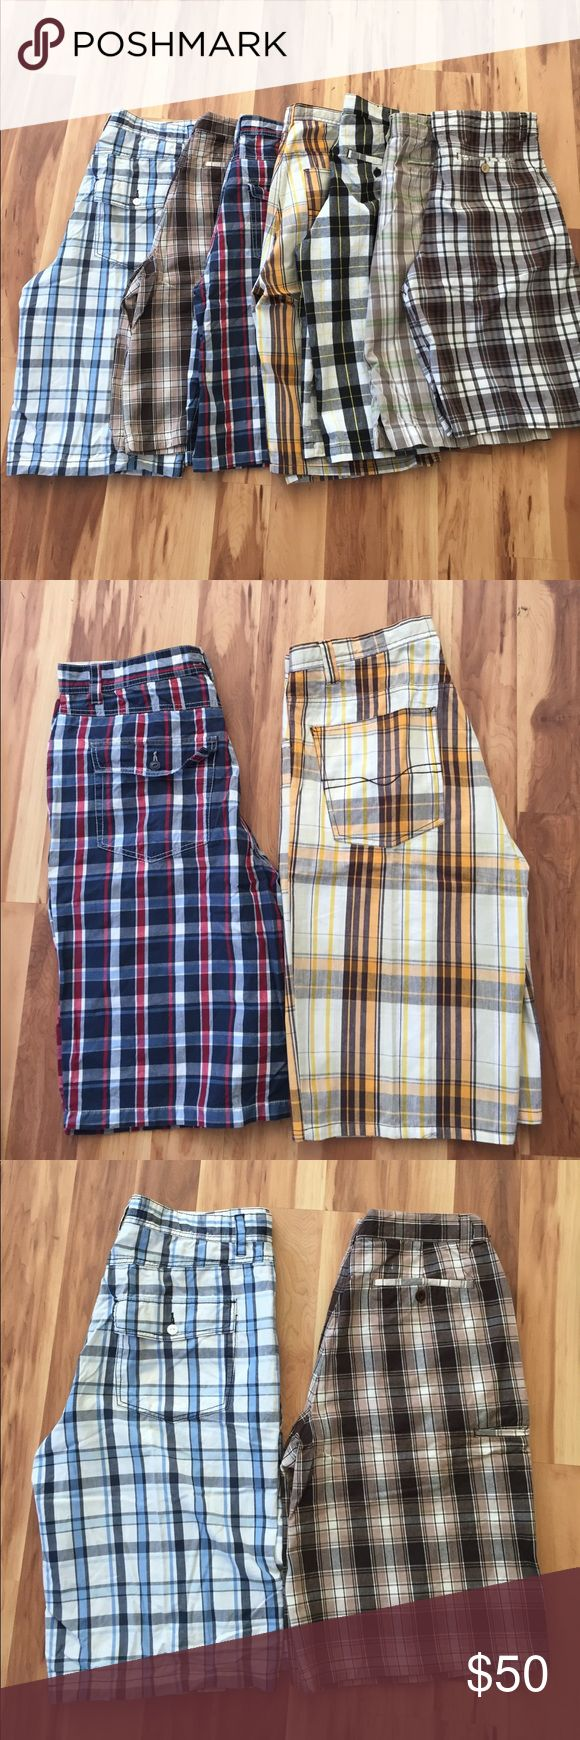 Bundle 7 Men's Plaid Shorts Shorts are in very good condition.3 Footlocker,1 LaGate,1 Code,1 Blues,& 1 no name tag has been removed. Shorts